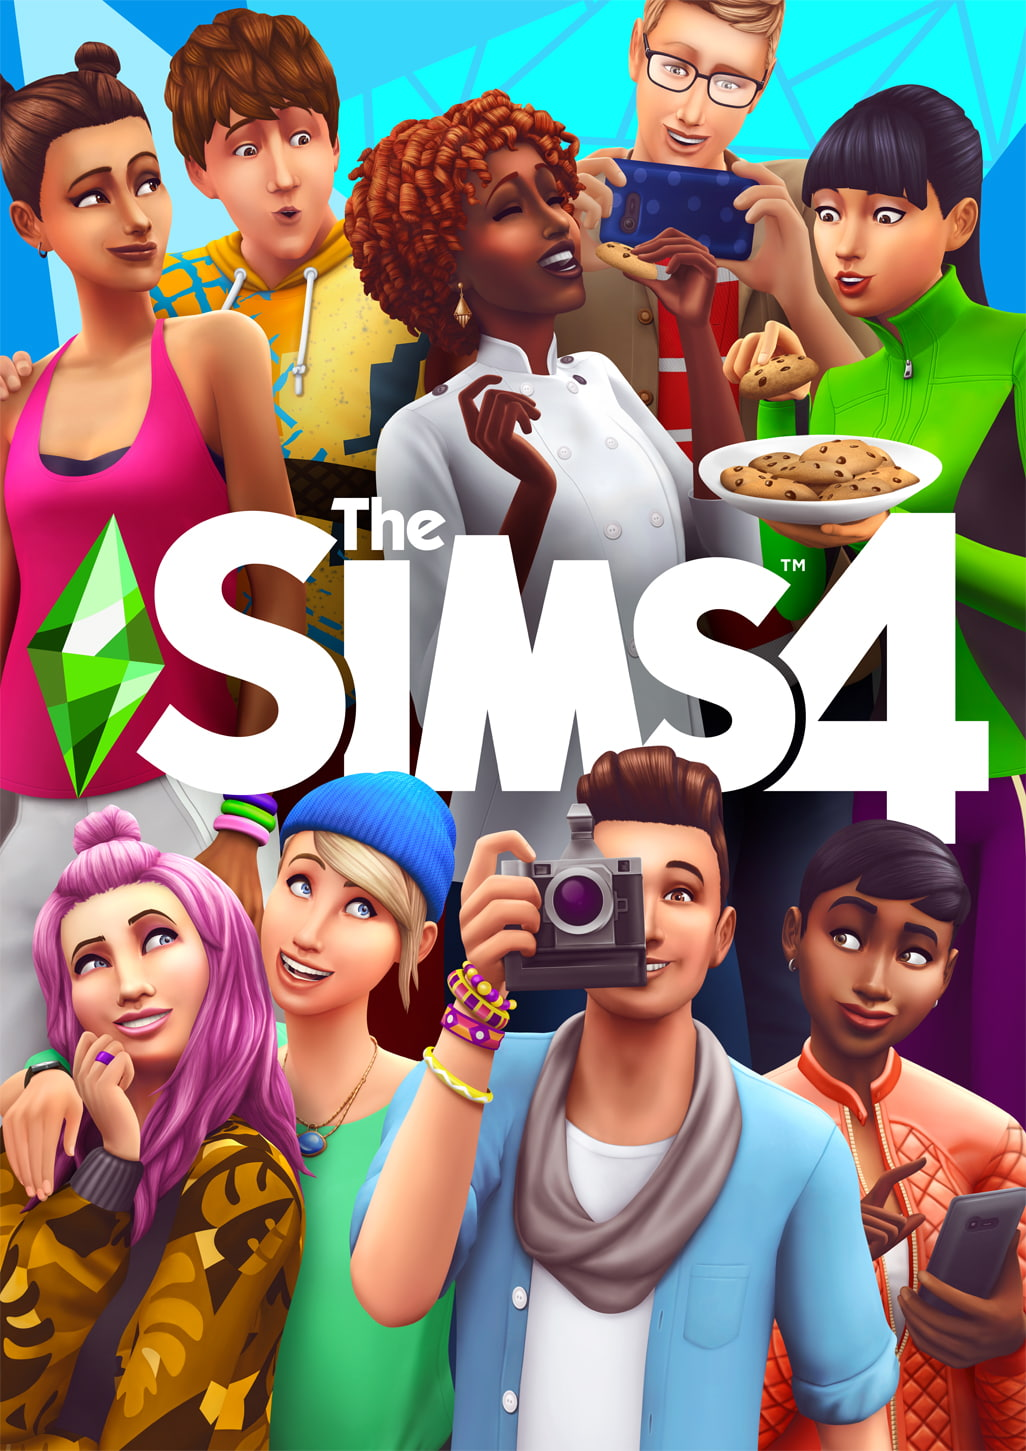 The Sims 4 will feature a same-sex couple on its cover for the first